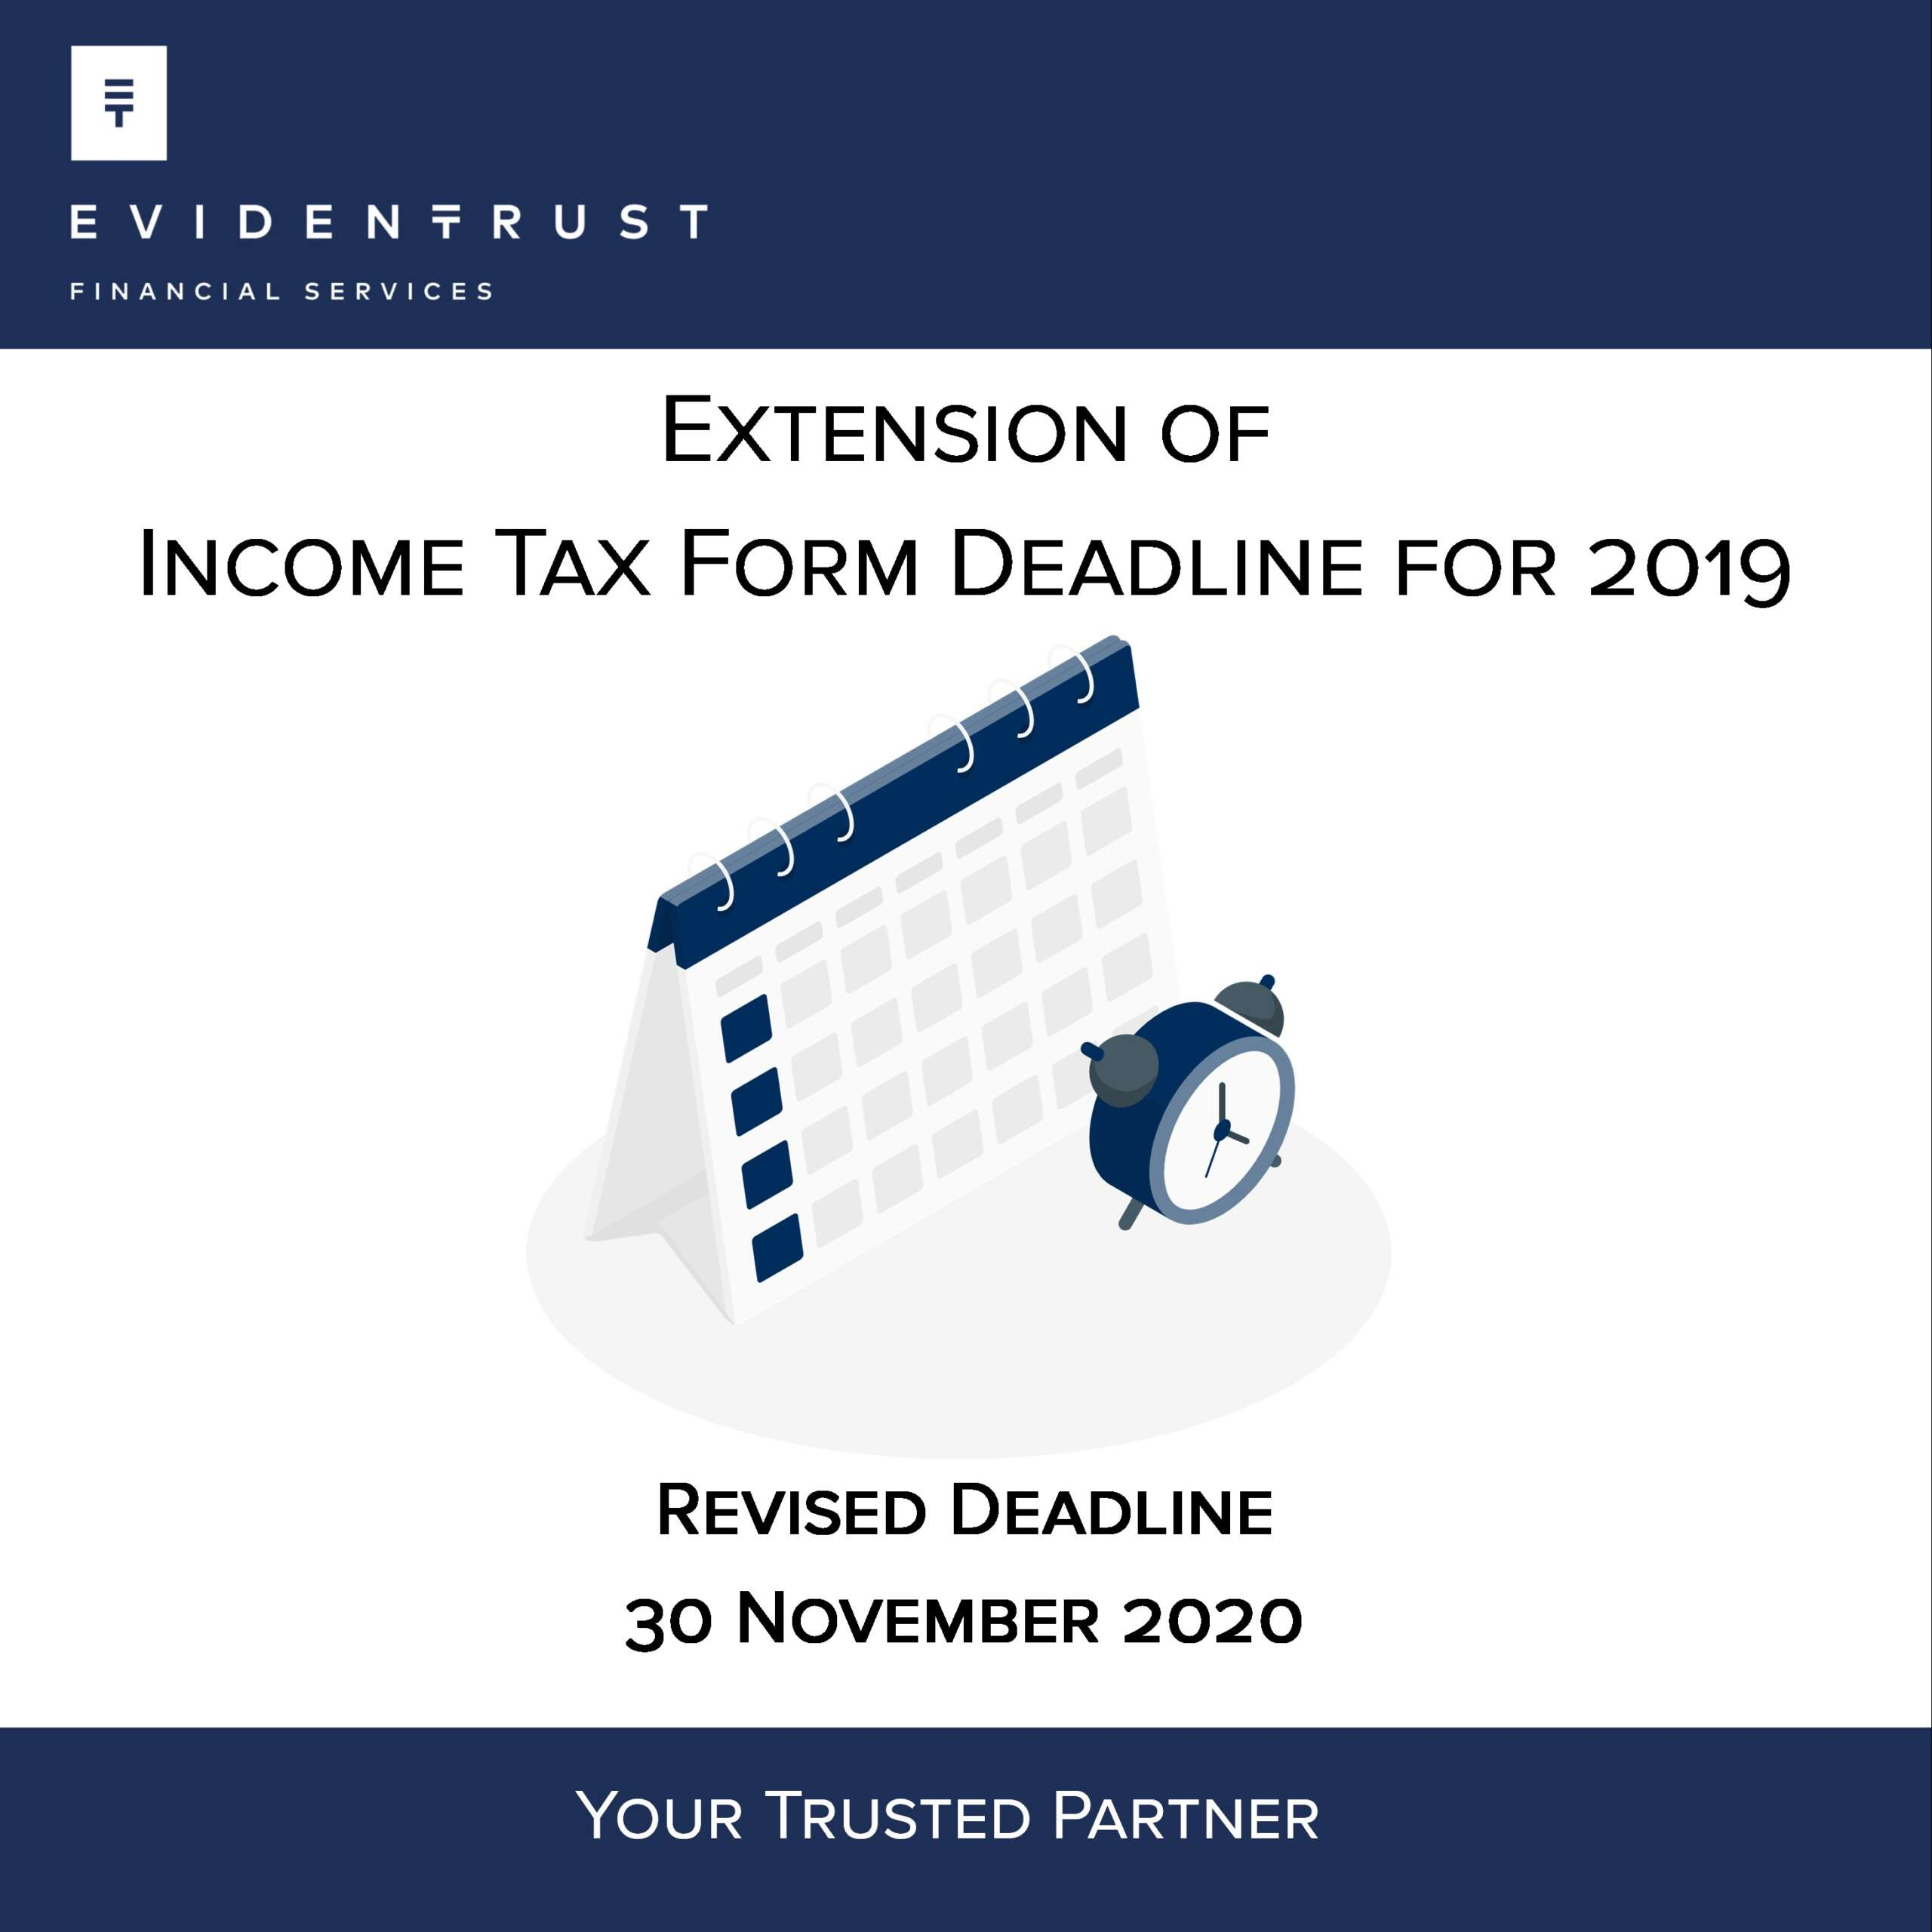 Extension of Income Tax Form Deadline for 2019